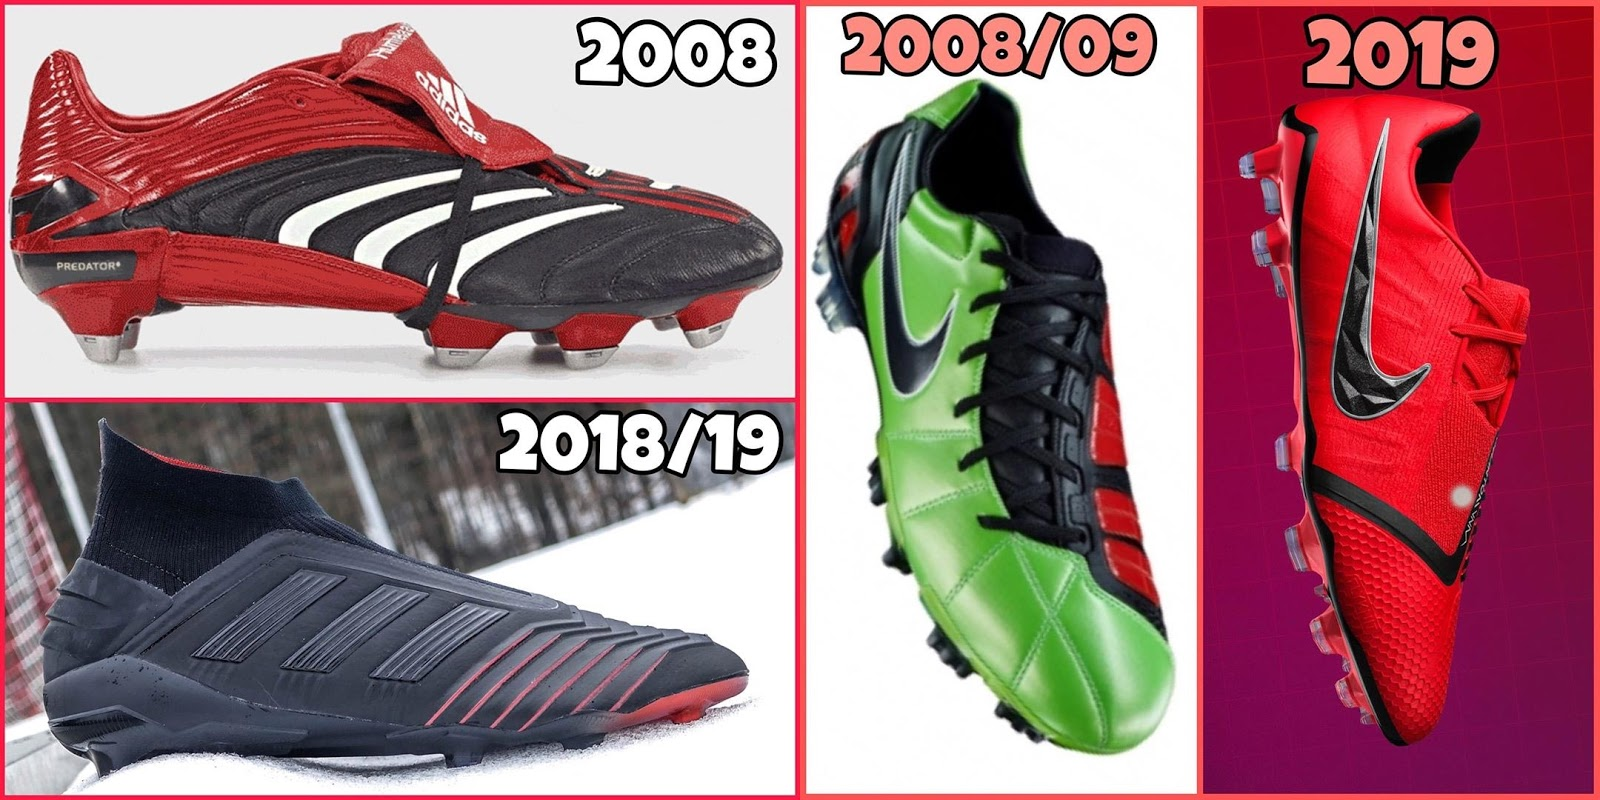 079407caaa5a Now German football boot influencer @fabianpecherhas shared the evolution  of four football boot silos from 2009 until 2019, including the iconic  Adidas ...